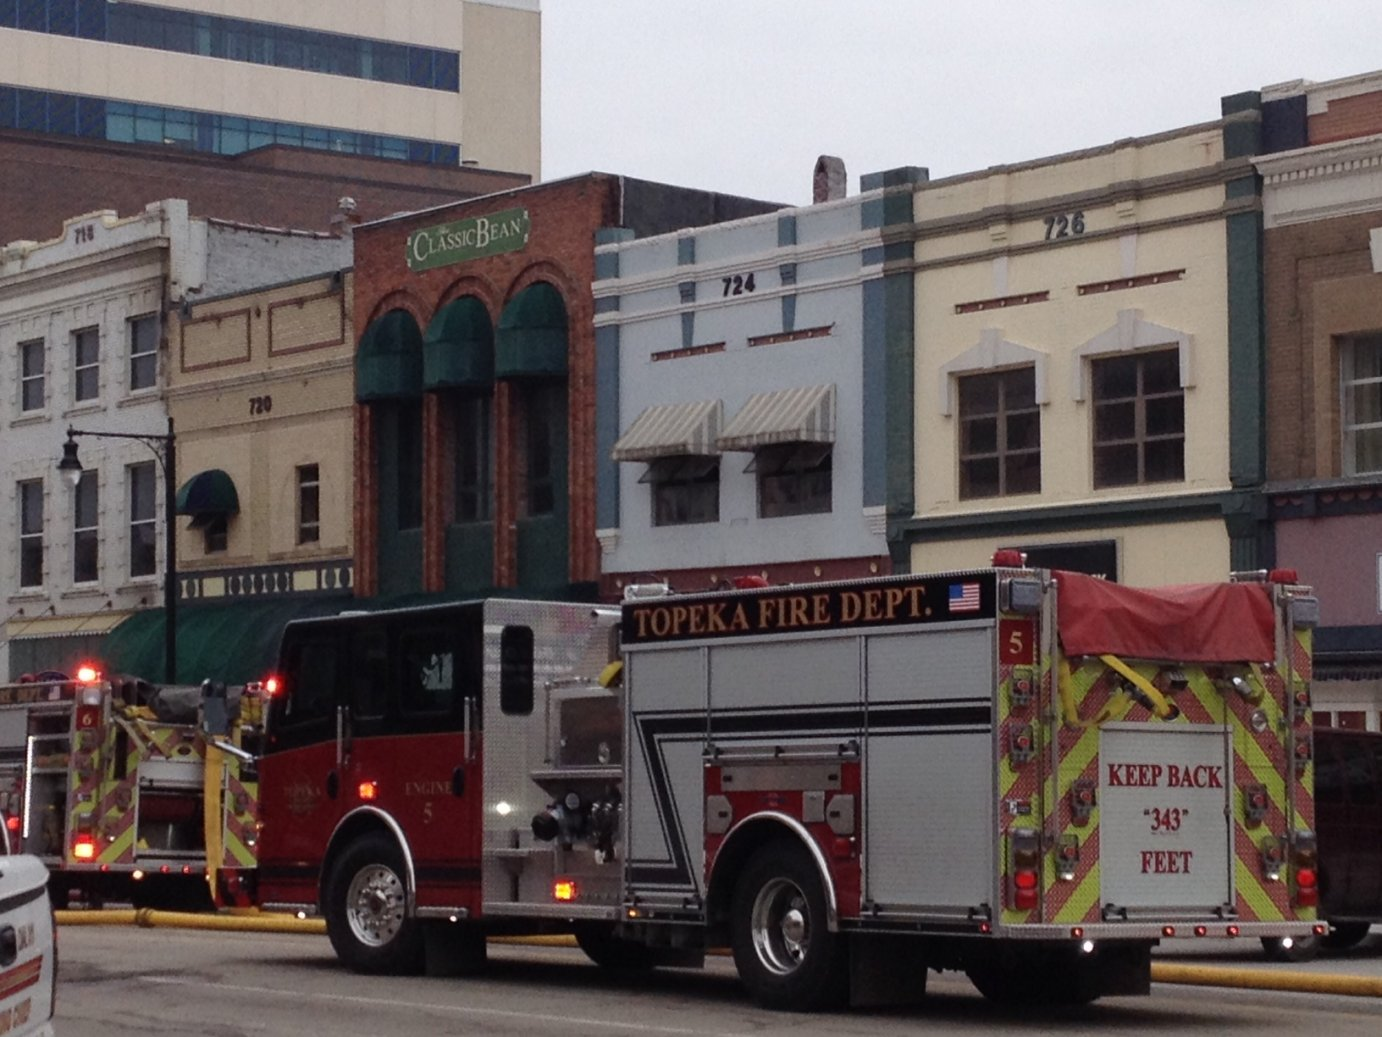 An early morning fire in downtown Topeka affected several businesses. (Photo by J. Schafer)